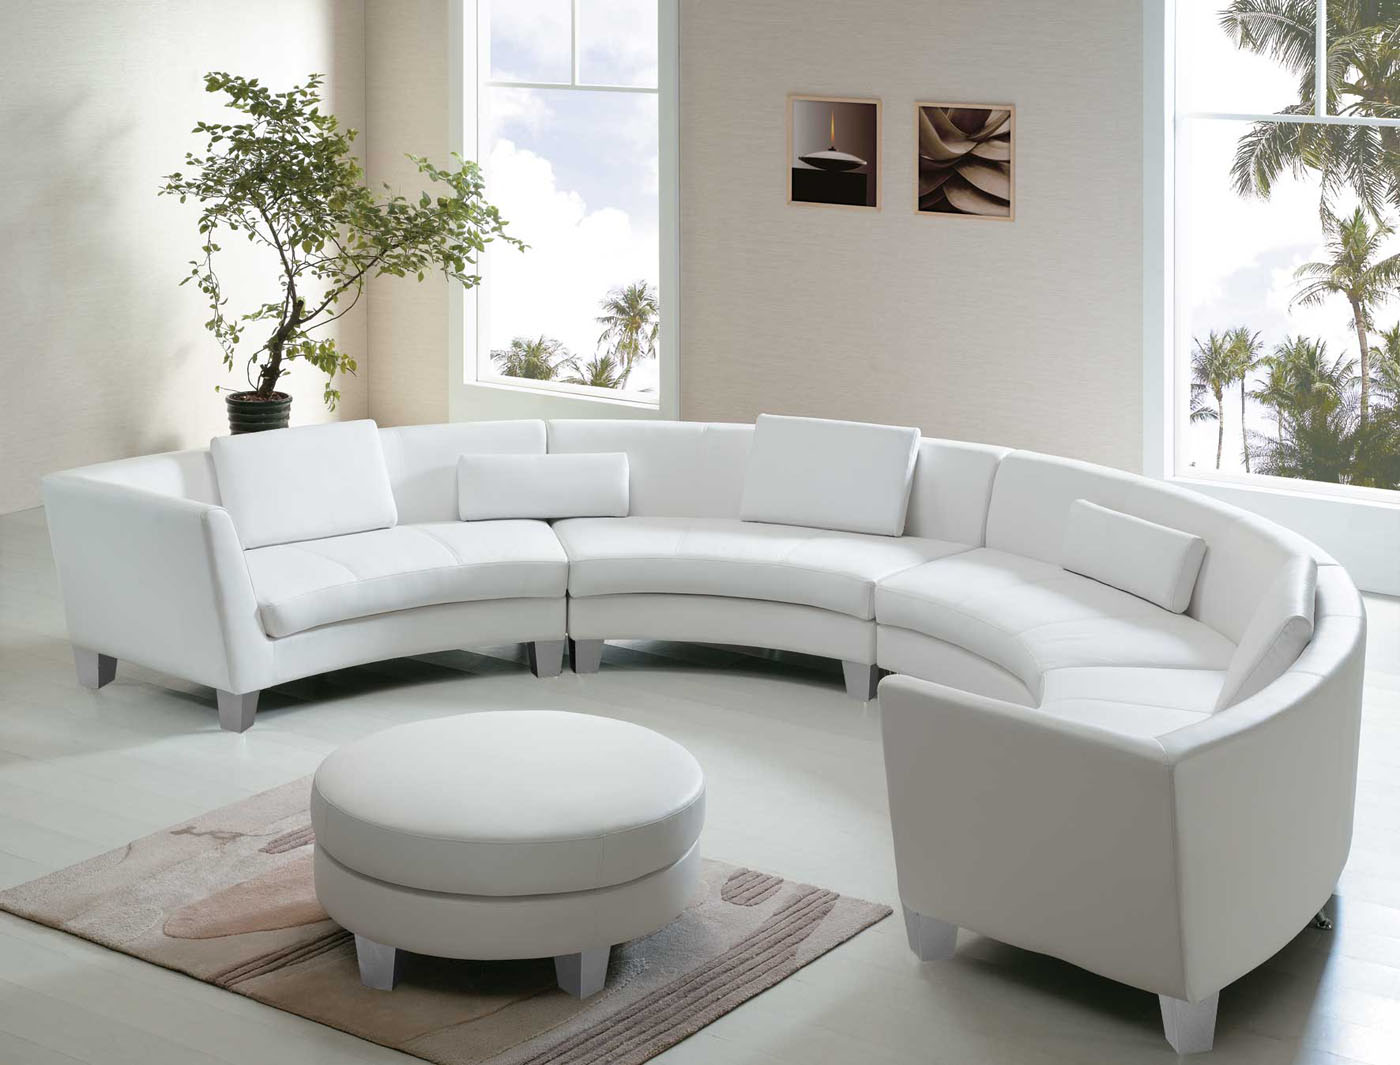 white leather living room set. charming cheap sectional sofas in solid white on ceramics floor plus  small rugs and Furniture Inspiring Cheap Sectional Sofas For Living Room